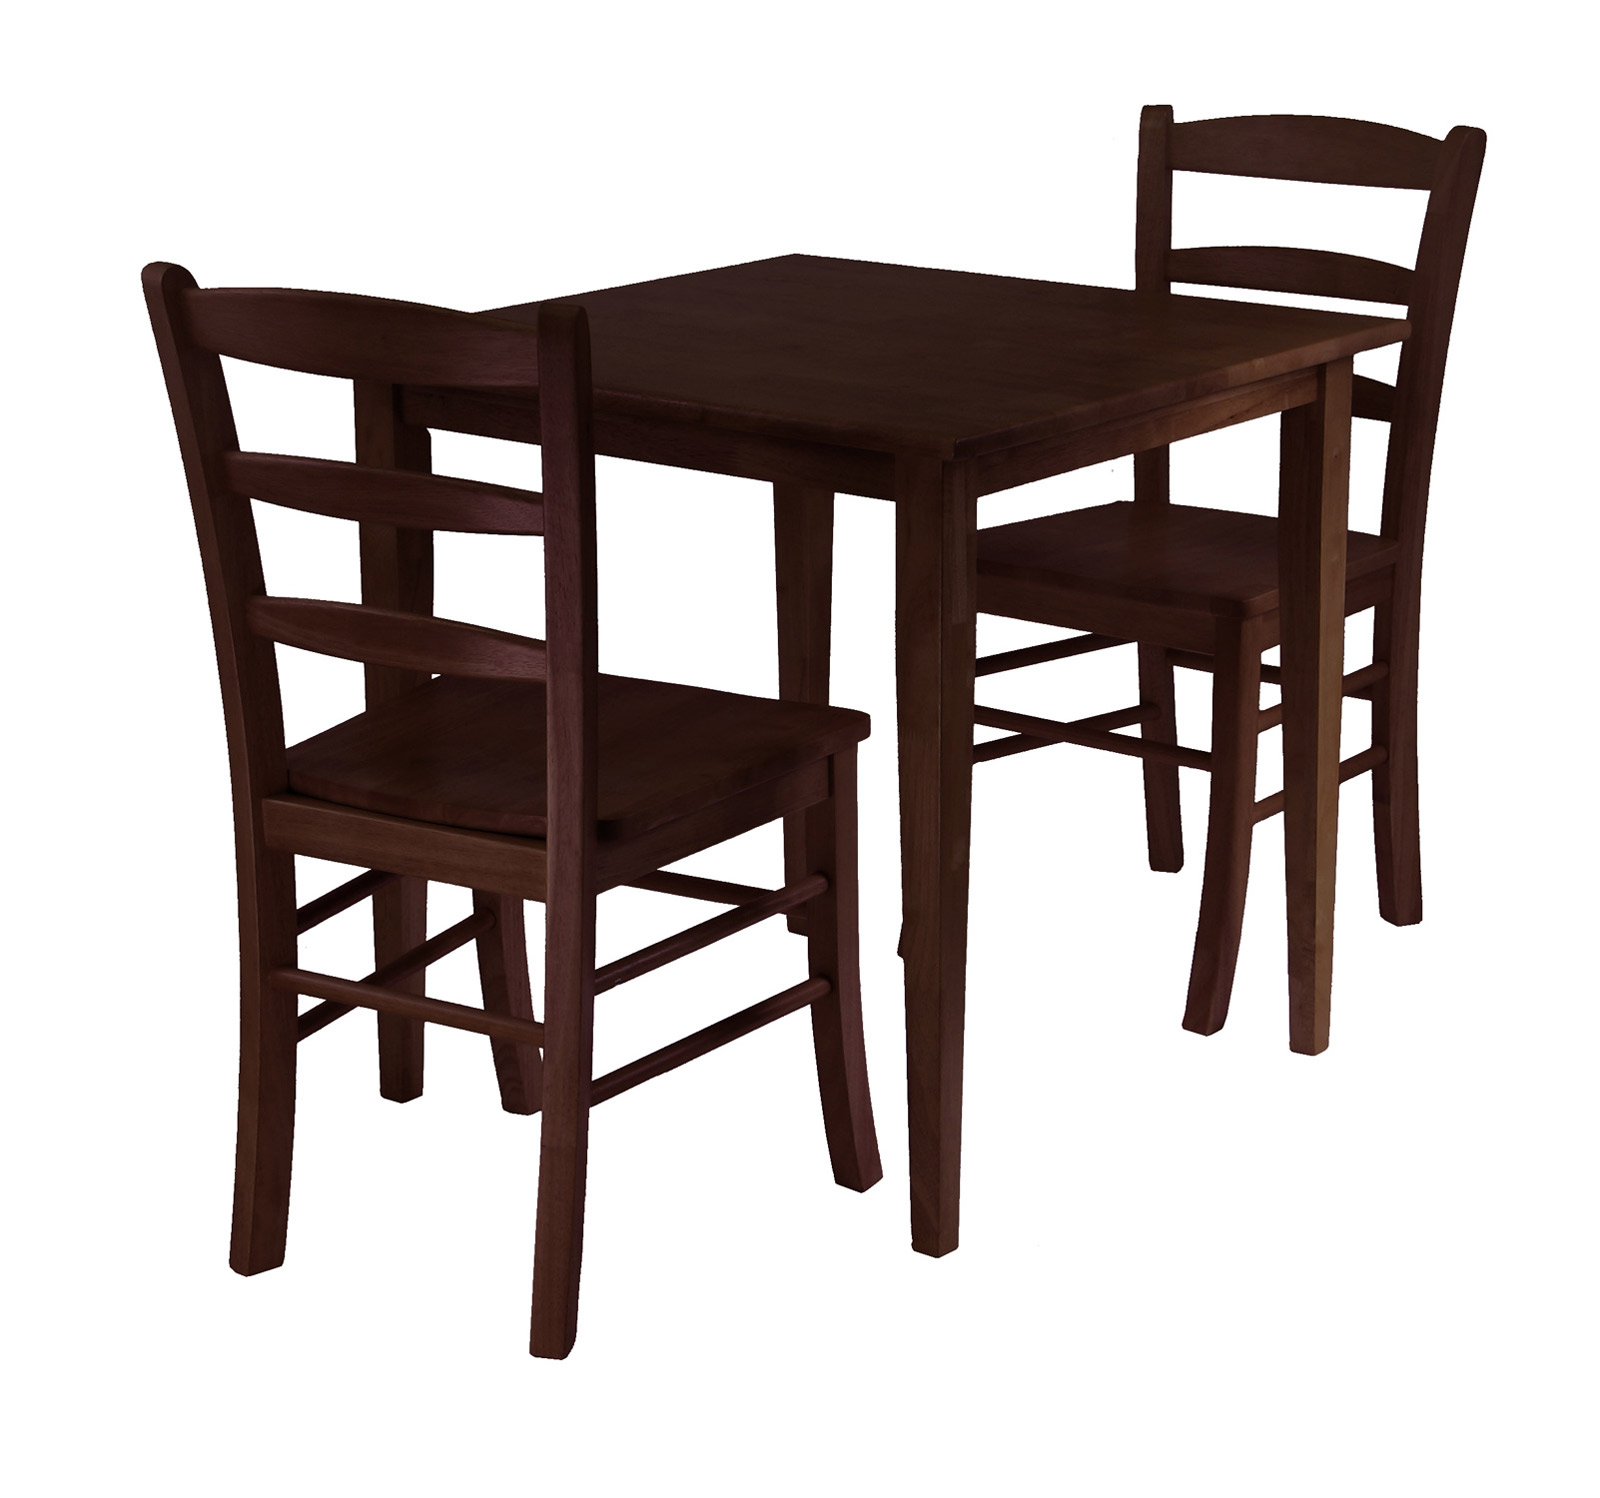 Groveland Dining Set and Individual Pieces by Winsome  : groveland dining table w 2 chairs by winsome trading from www.organizeit.com size 1600 x 1498 jpeg 184kB